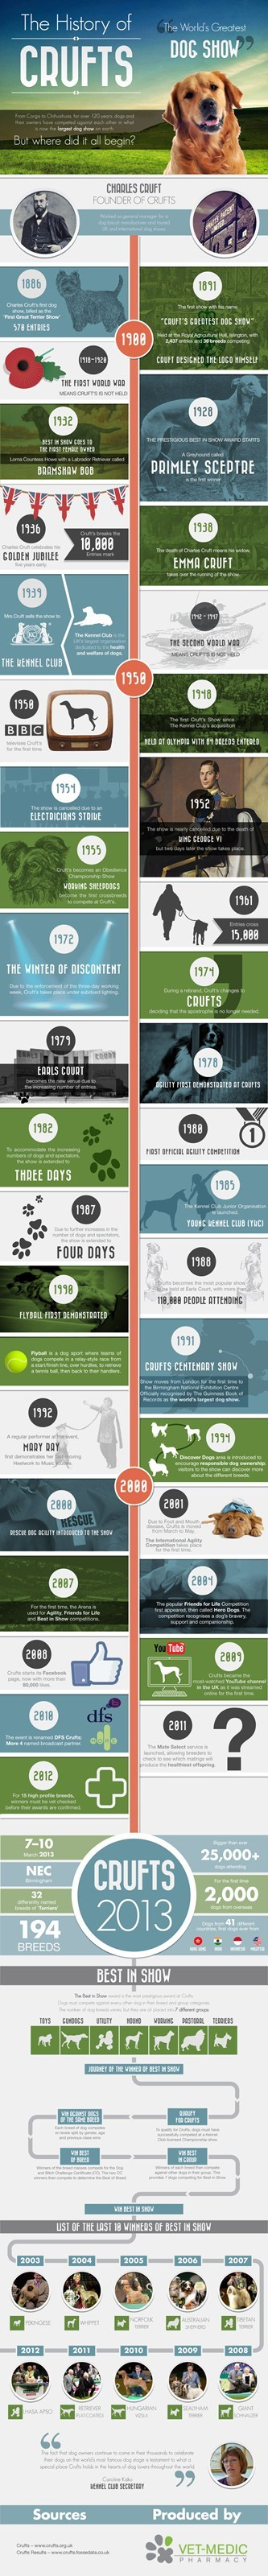 The History of The Crufts Dog Show